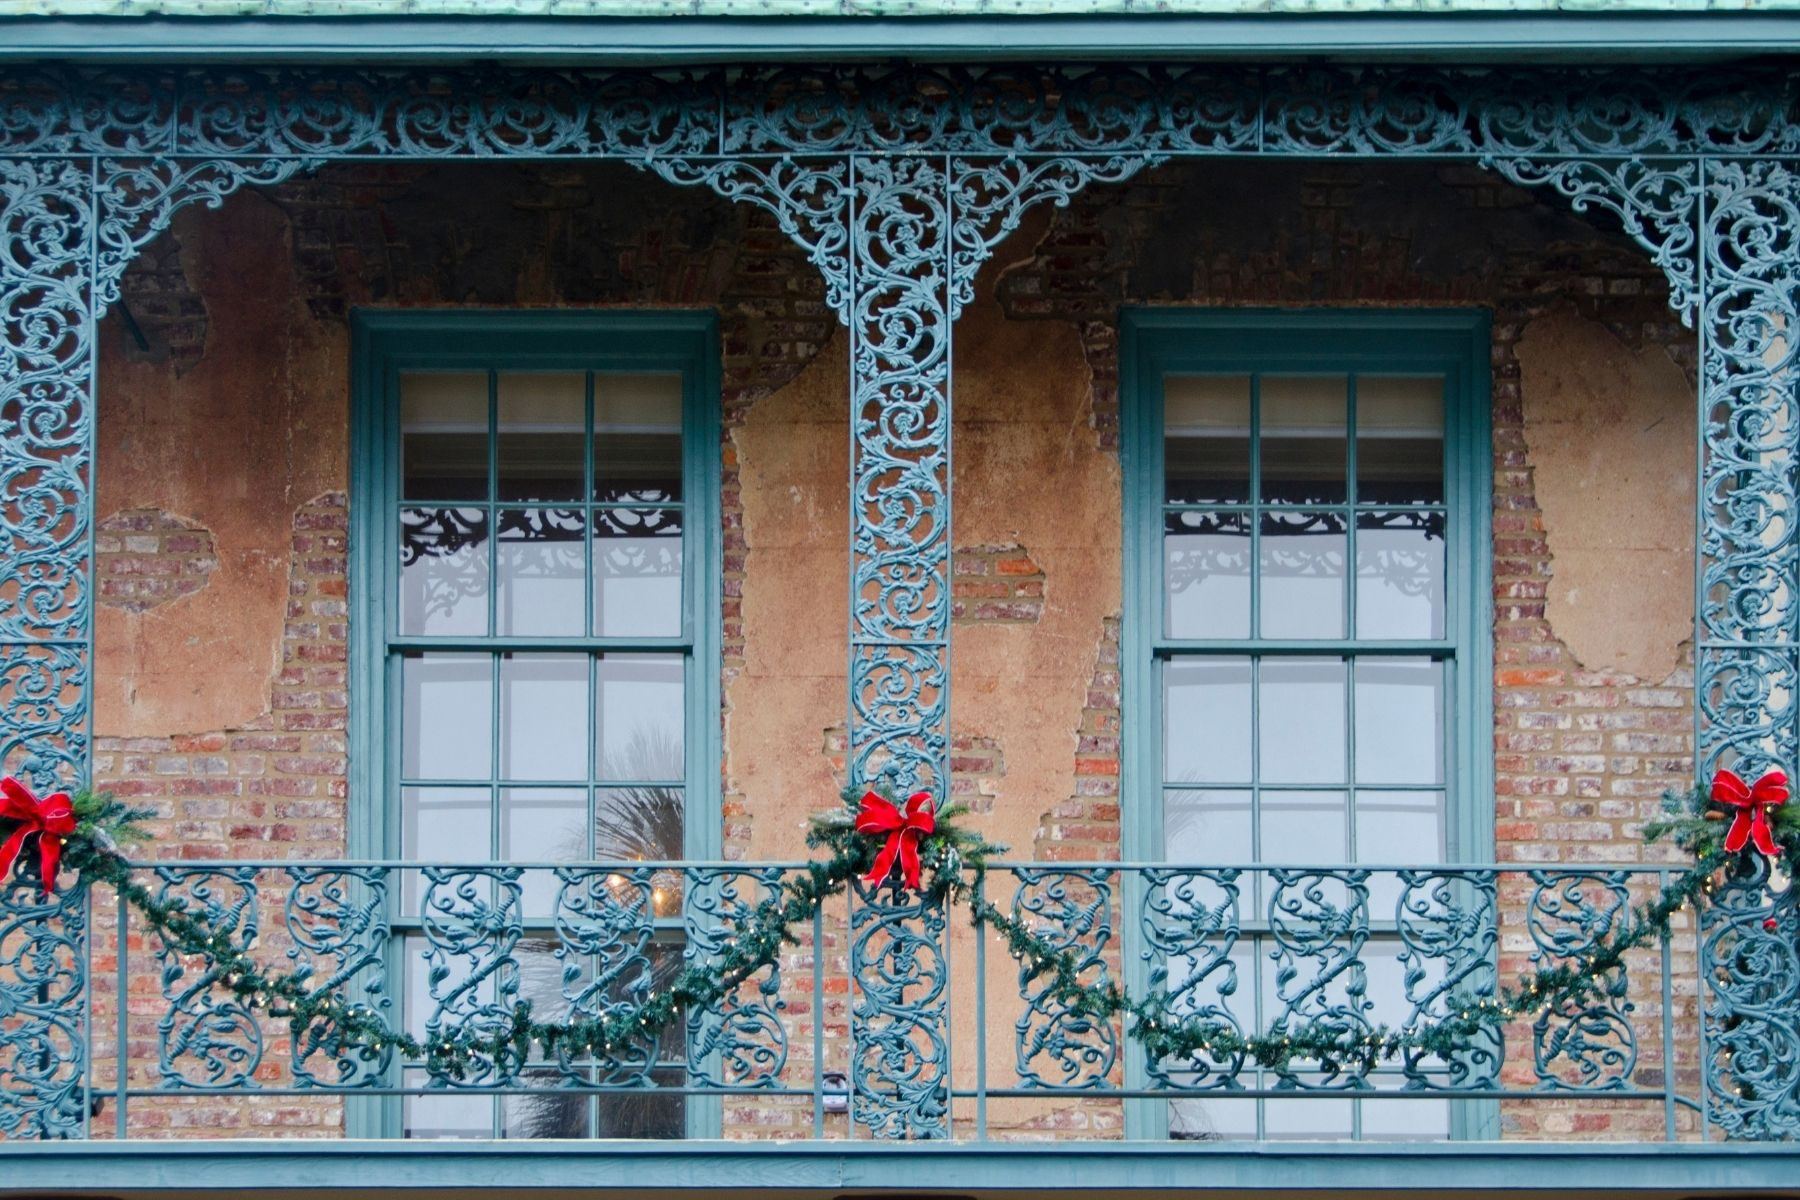 A property with holiday wreaths in Charleston in December